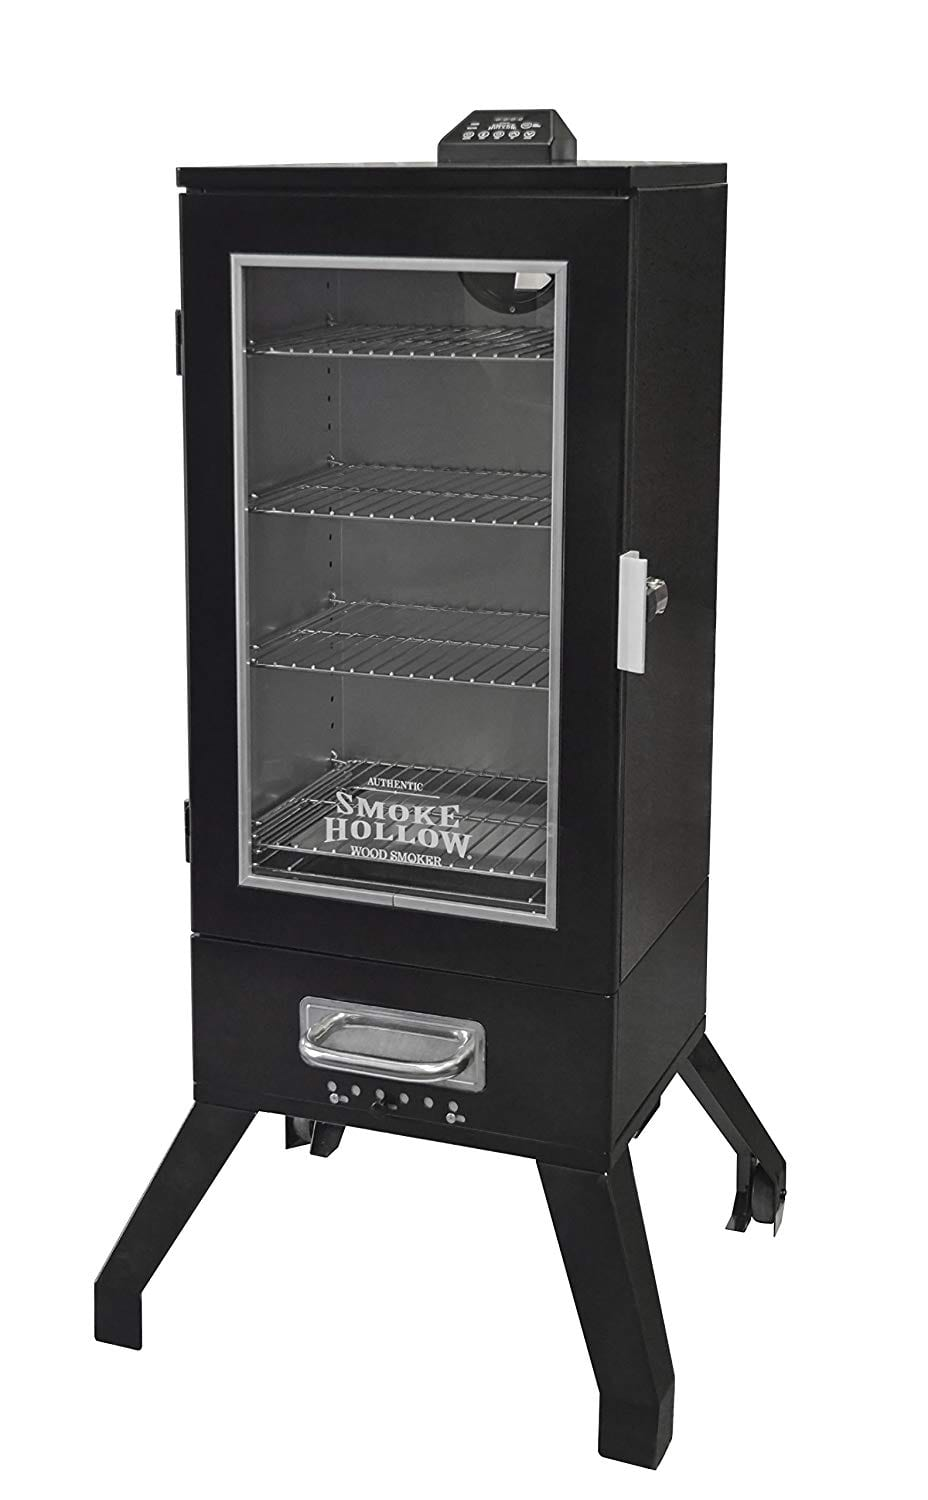 Smoke Hollow 3616DEW Digital Electric Smoker